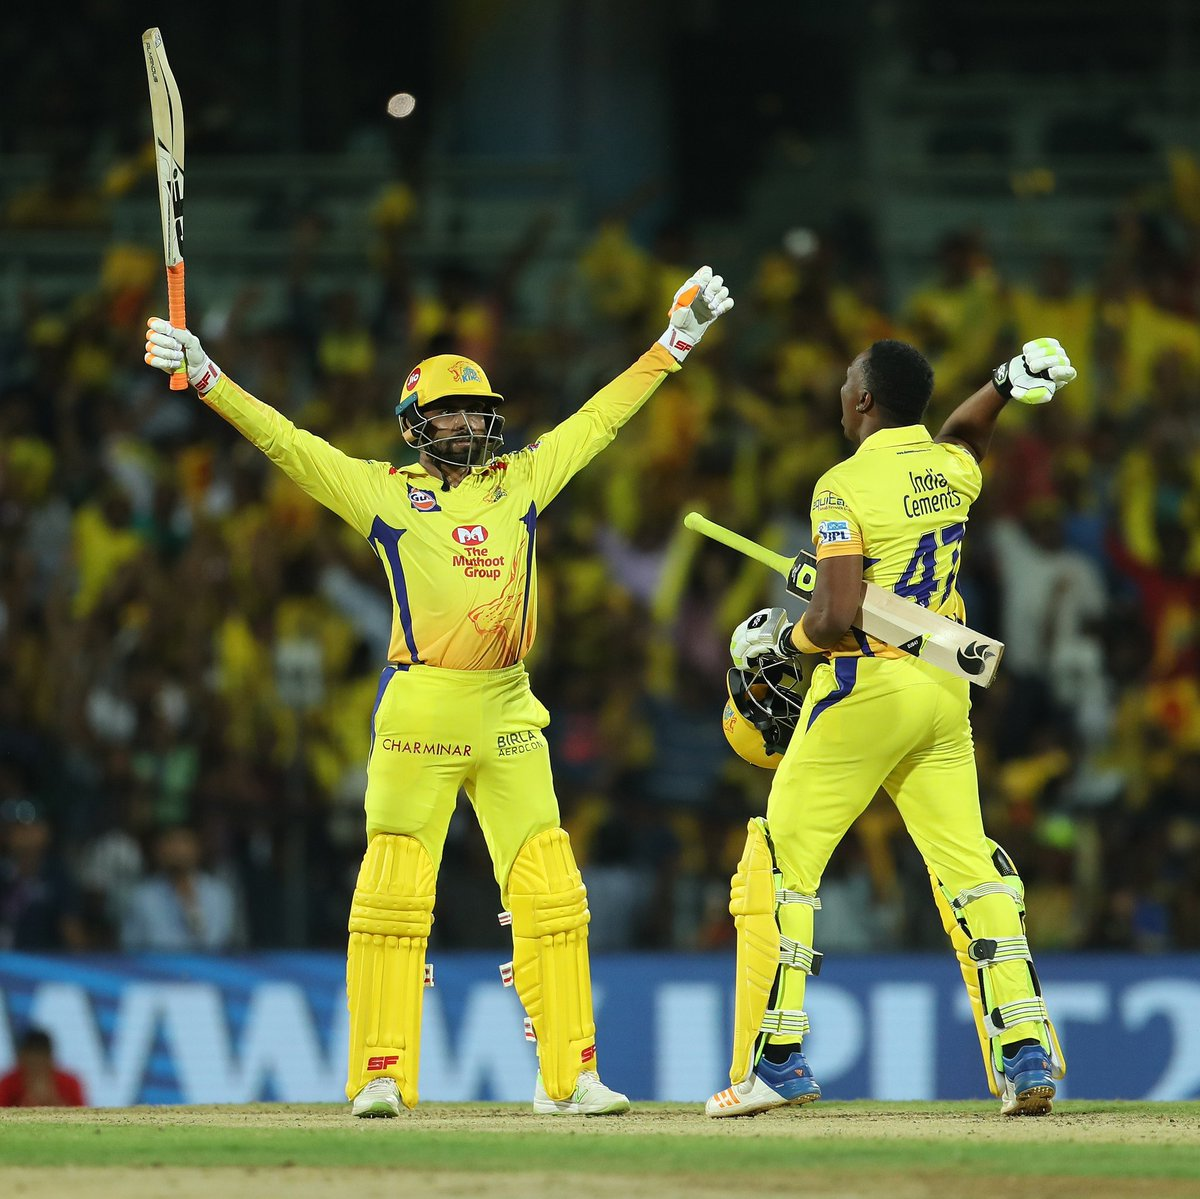 We, dear Sir, love you to bits, to pieces, eight times round the Moon and back! #WhistlePodu #SirJaddu #Yellove  @imjadeja<br>http://pic.twitter.com/ZoL1NbBbHj